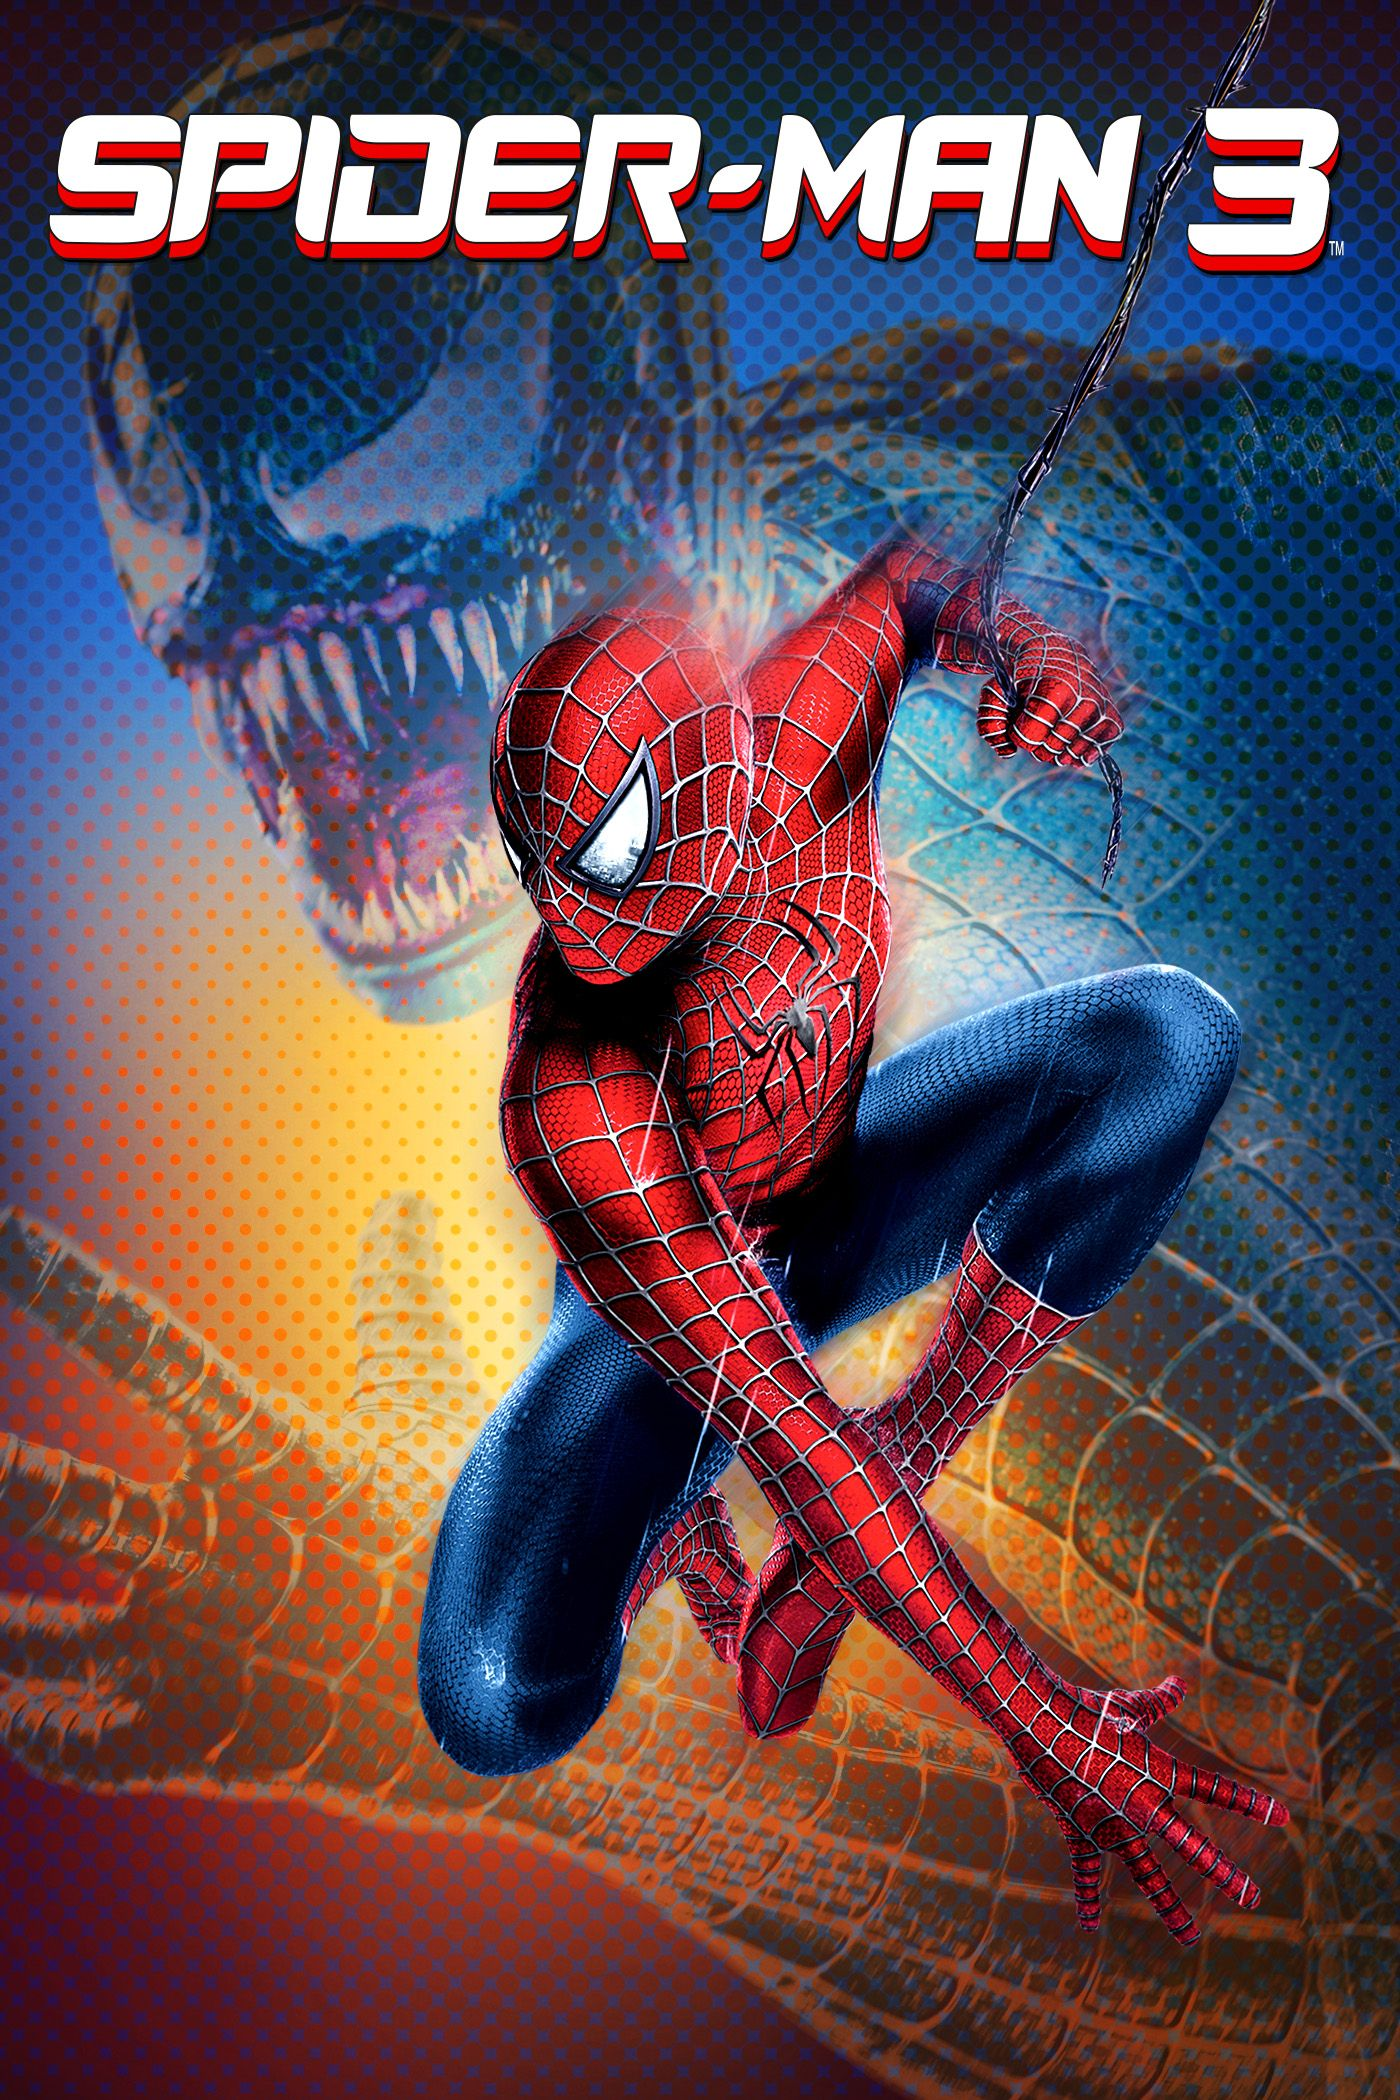 Spider-man 3 2007 Watch Full Movie for Free on Movies123